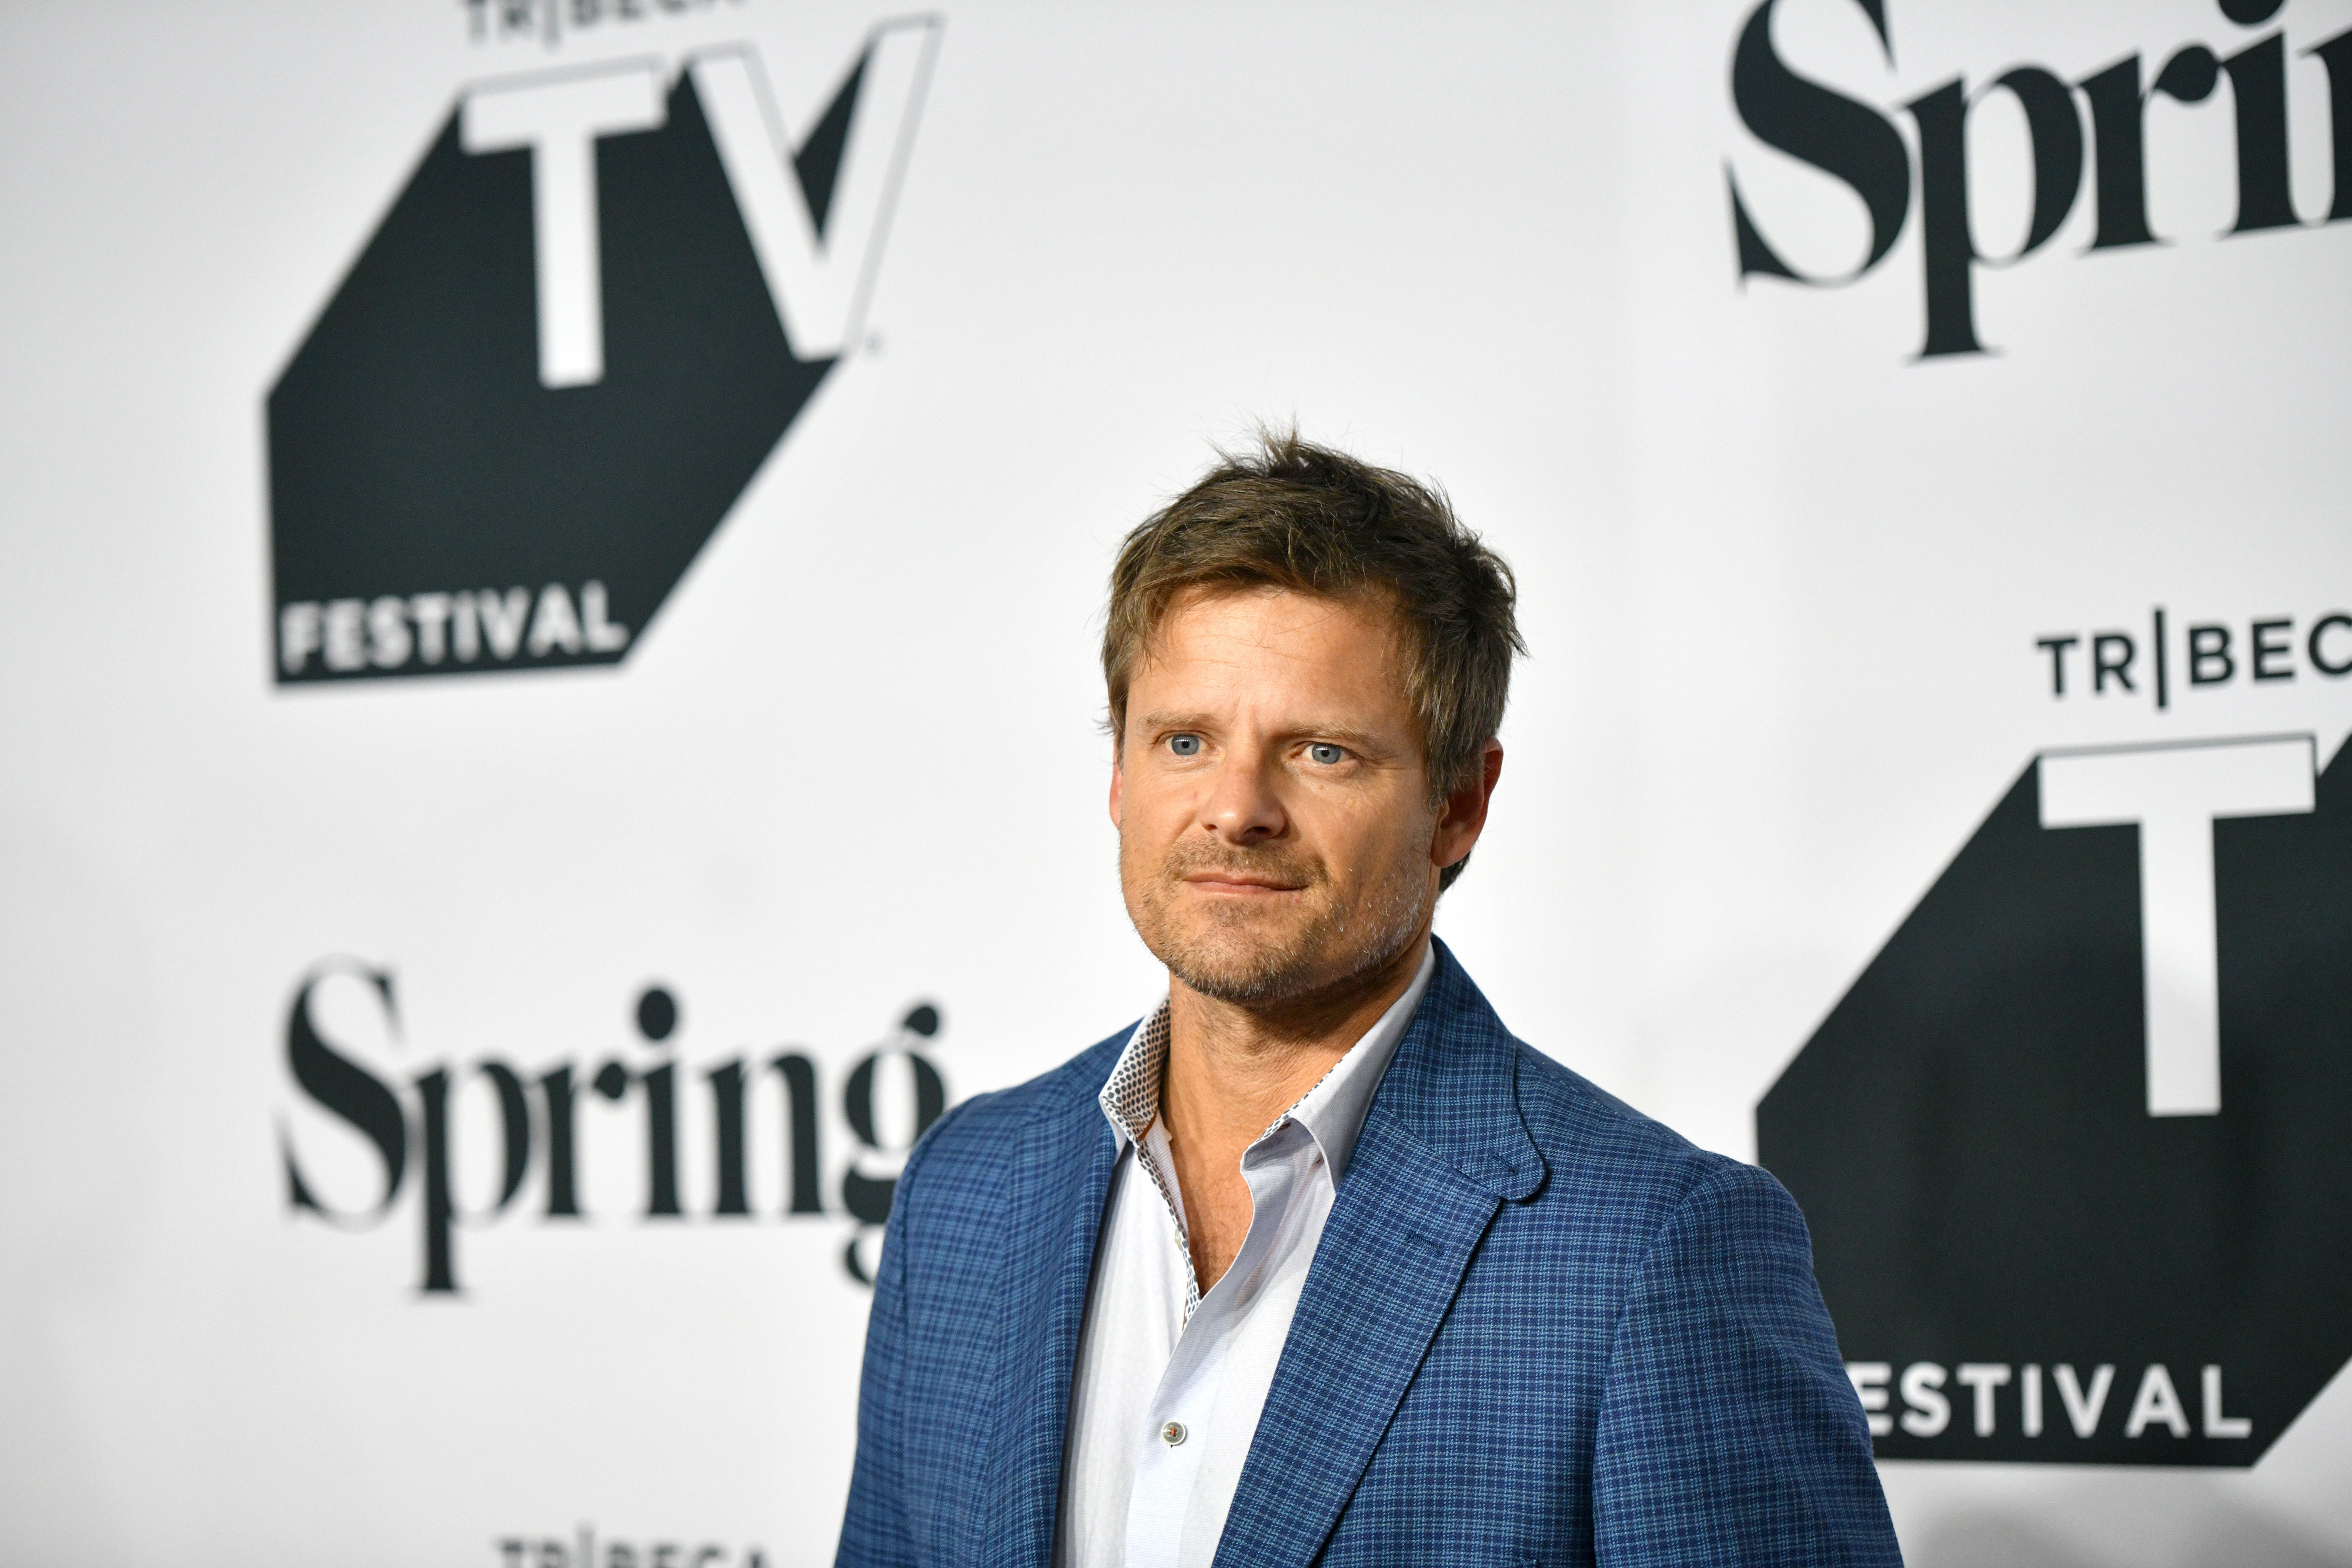 NEW YORK, NY - SEPTEMBER 21:  Actor Steve Zahn attends the premiere of National Geographic's  Valley of The Boom  at Tribeca TV Festival on September 21, 2018 in New York City.  (Photo by Bryan Bedder/Getty Images for National Geographic)